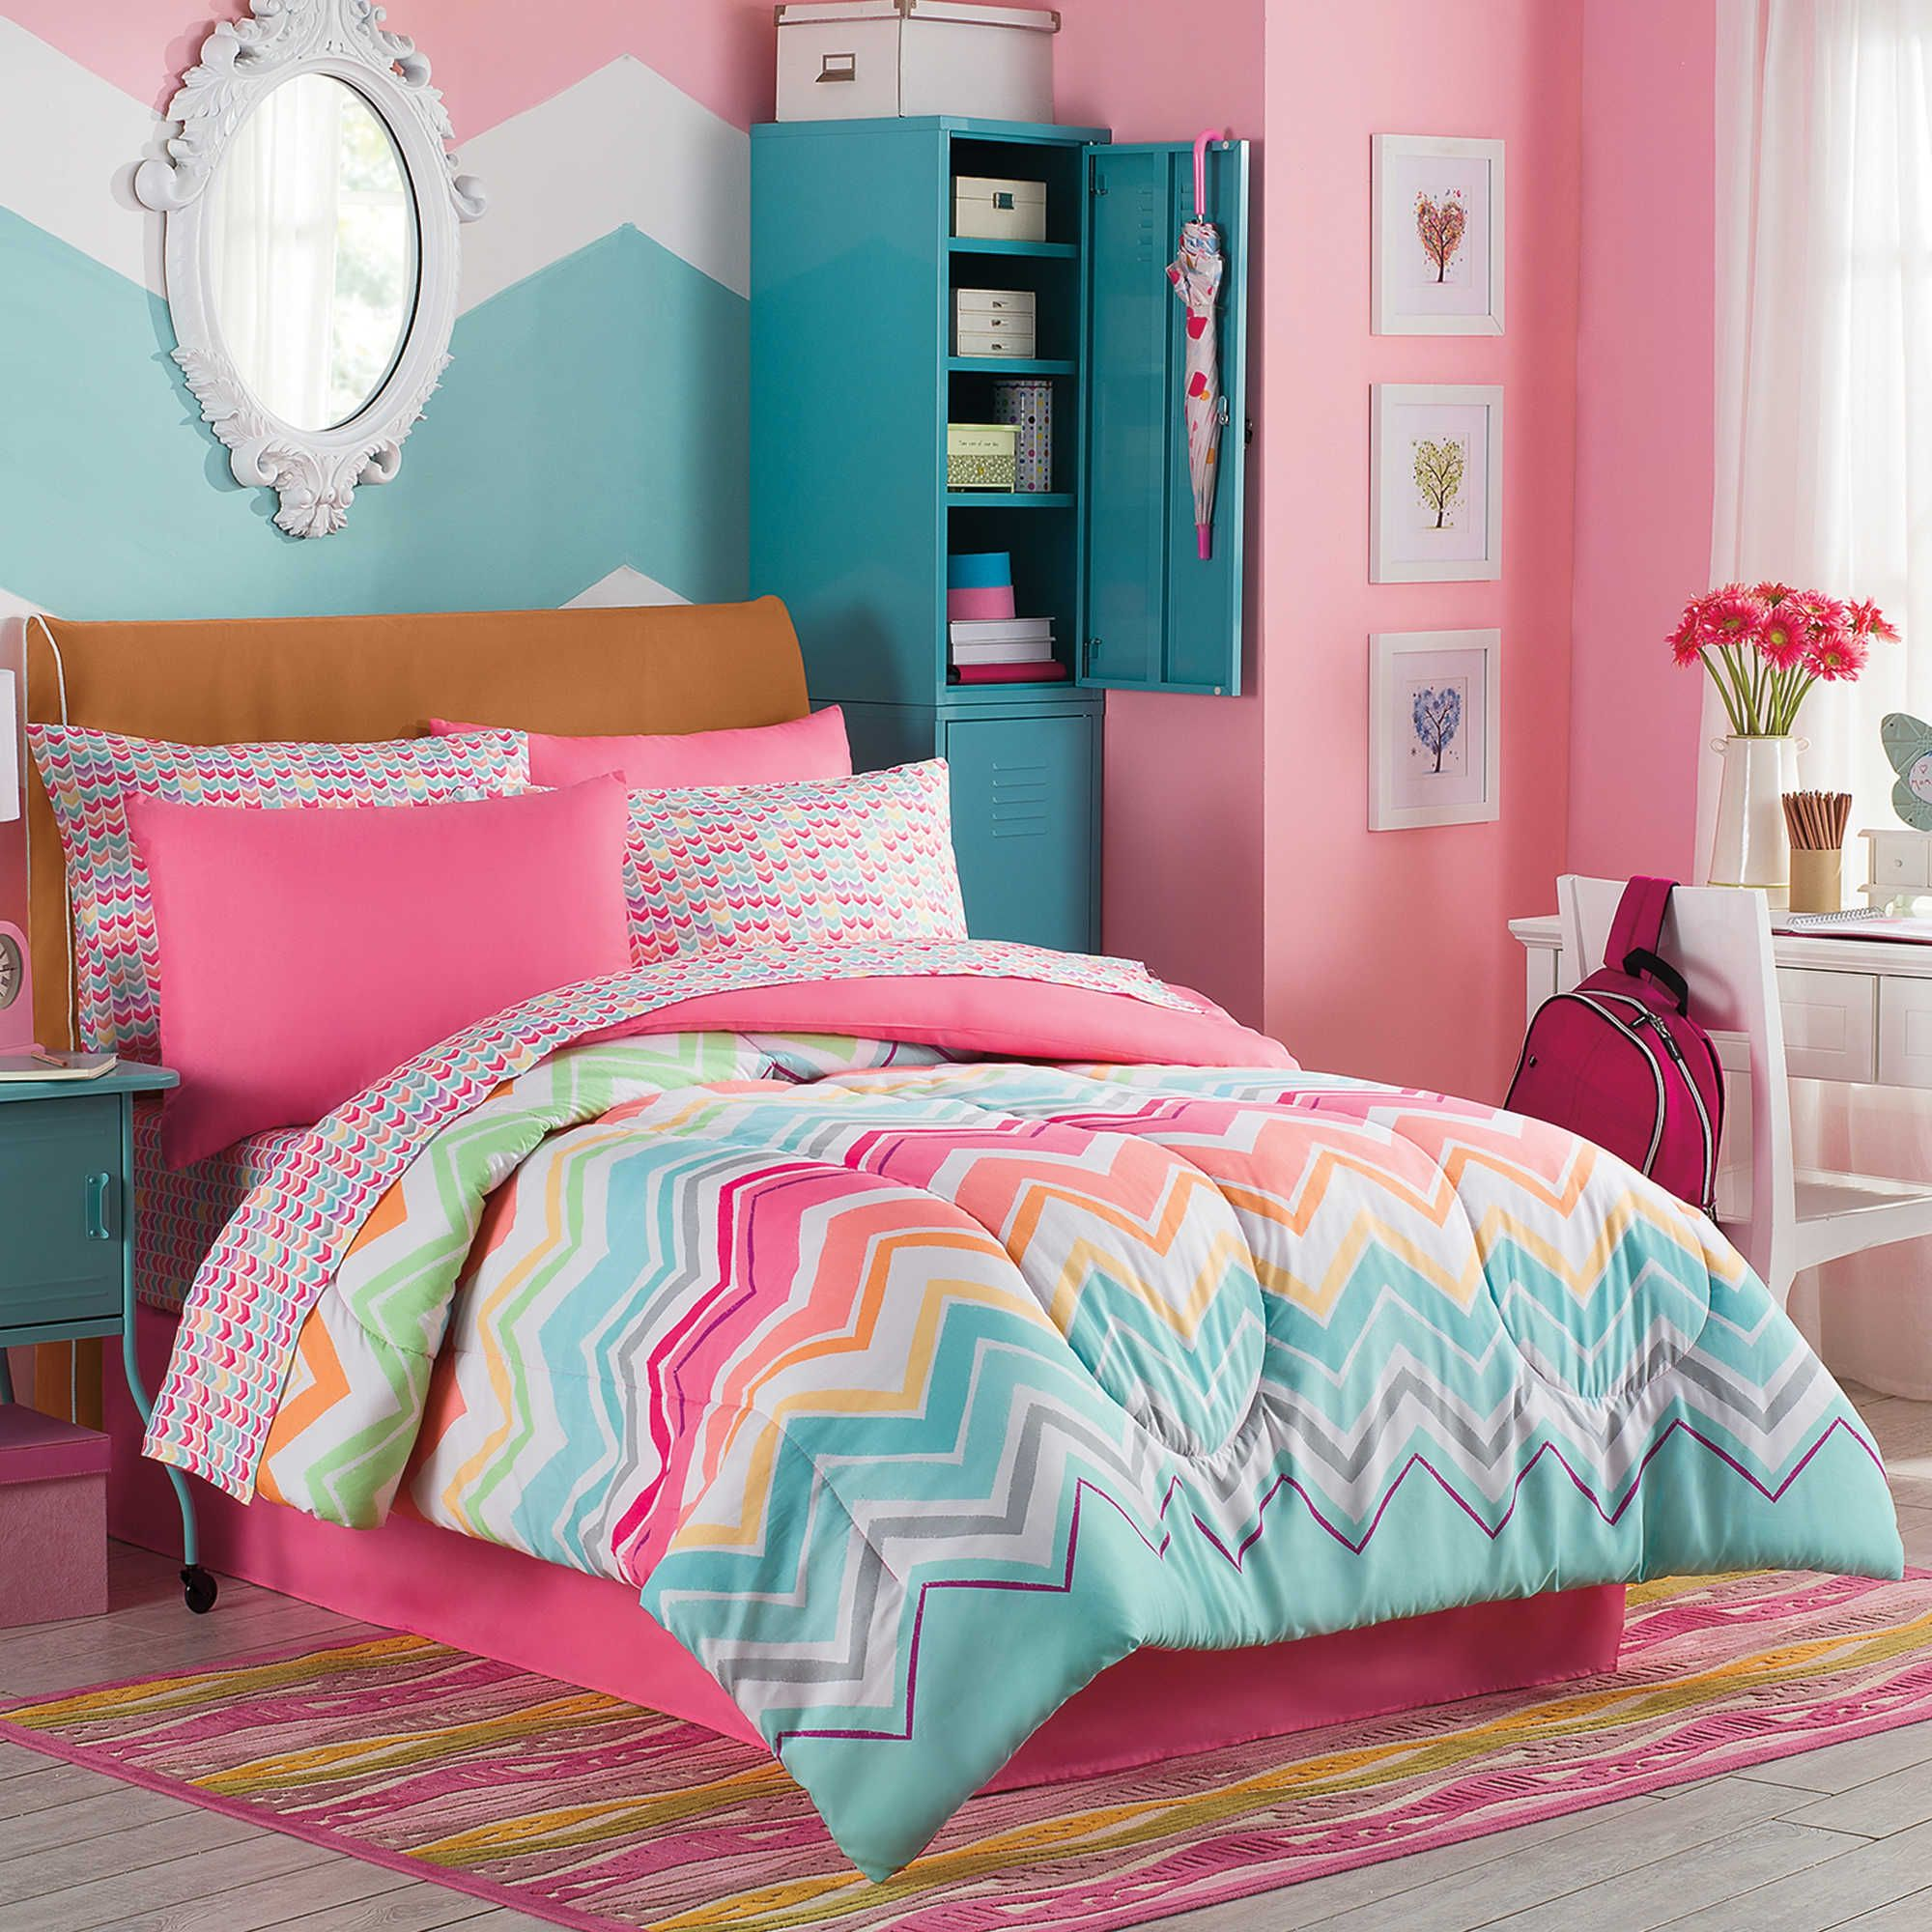 Bedroom ideas for teenage girls teal and pink - Bold Transform Your Little Girl S Room